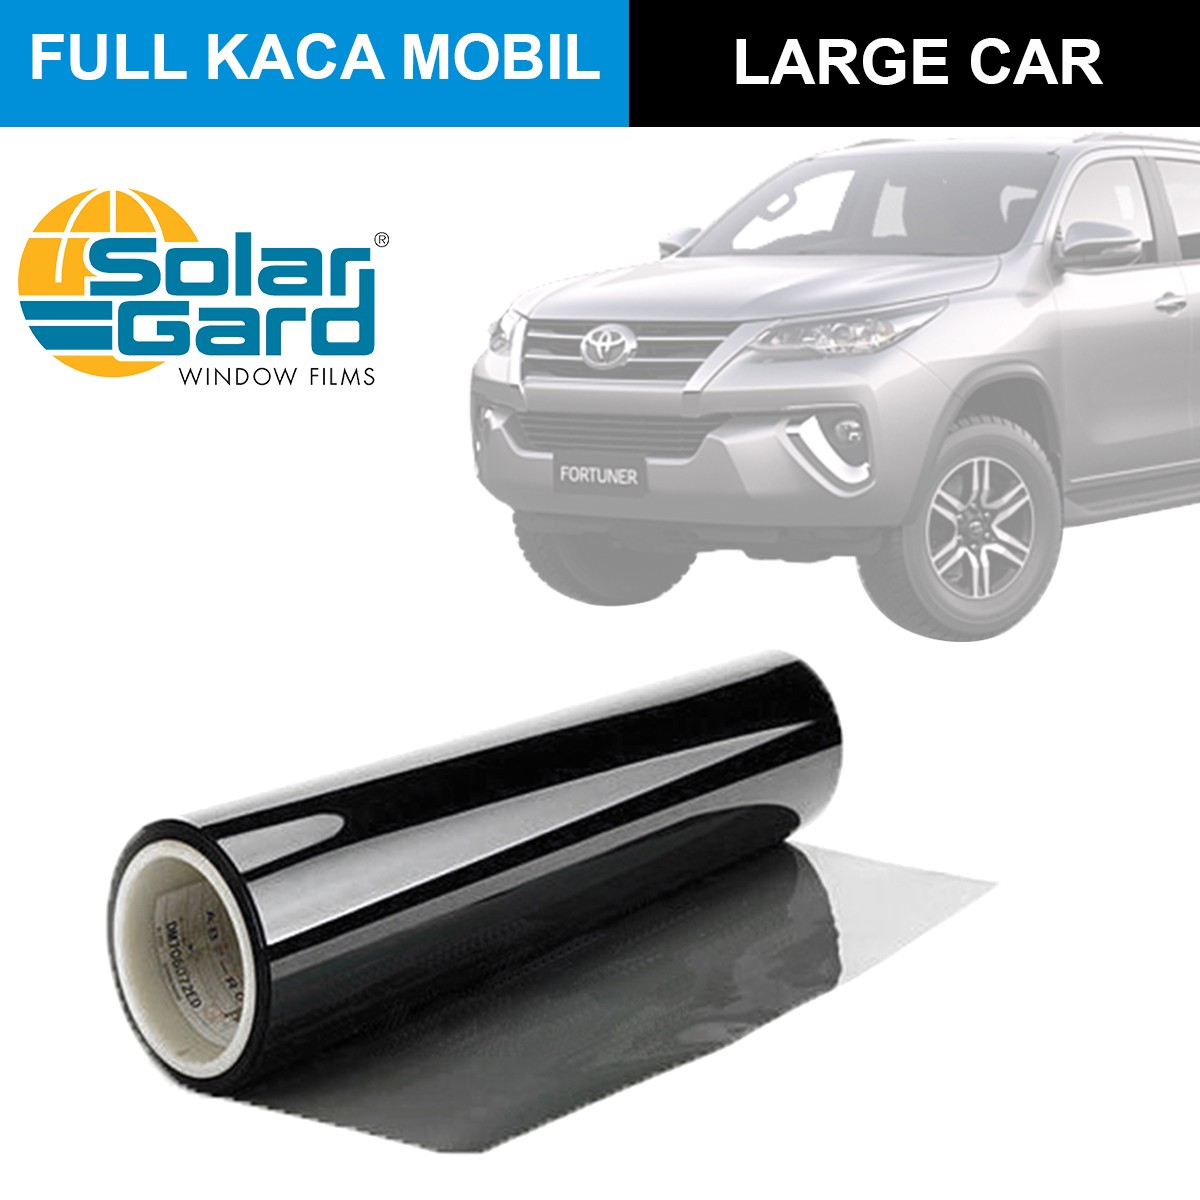 KACA FILM SOLAR GARD PLATINUM PERFORMANCE - (LARGE CAR) FULL KACA